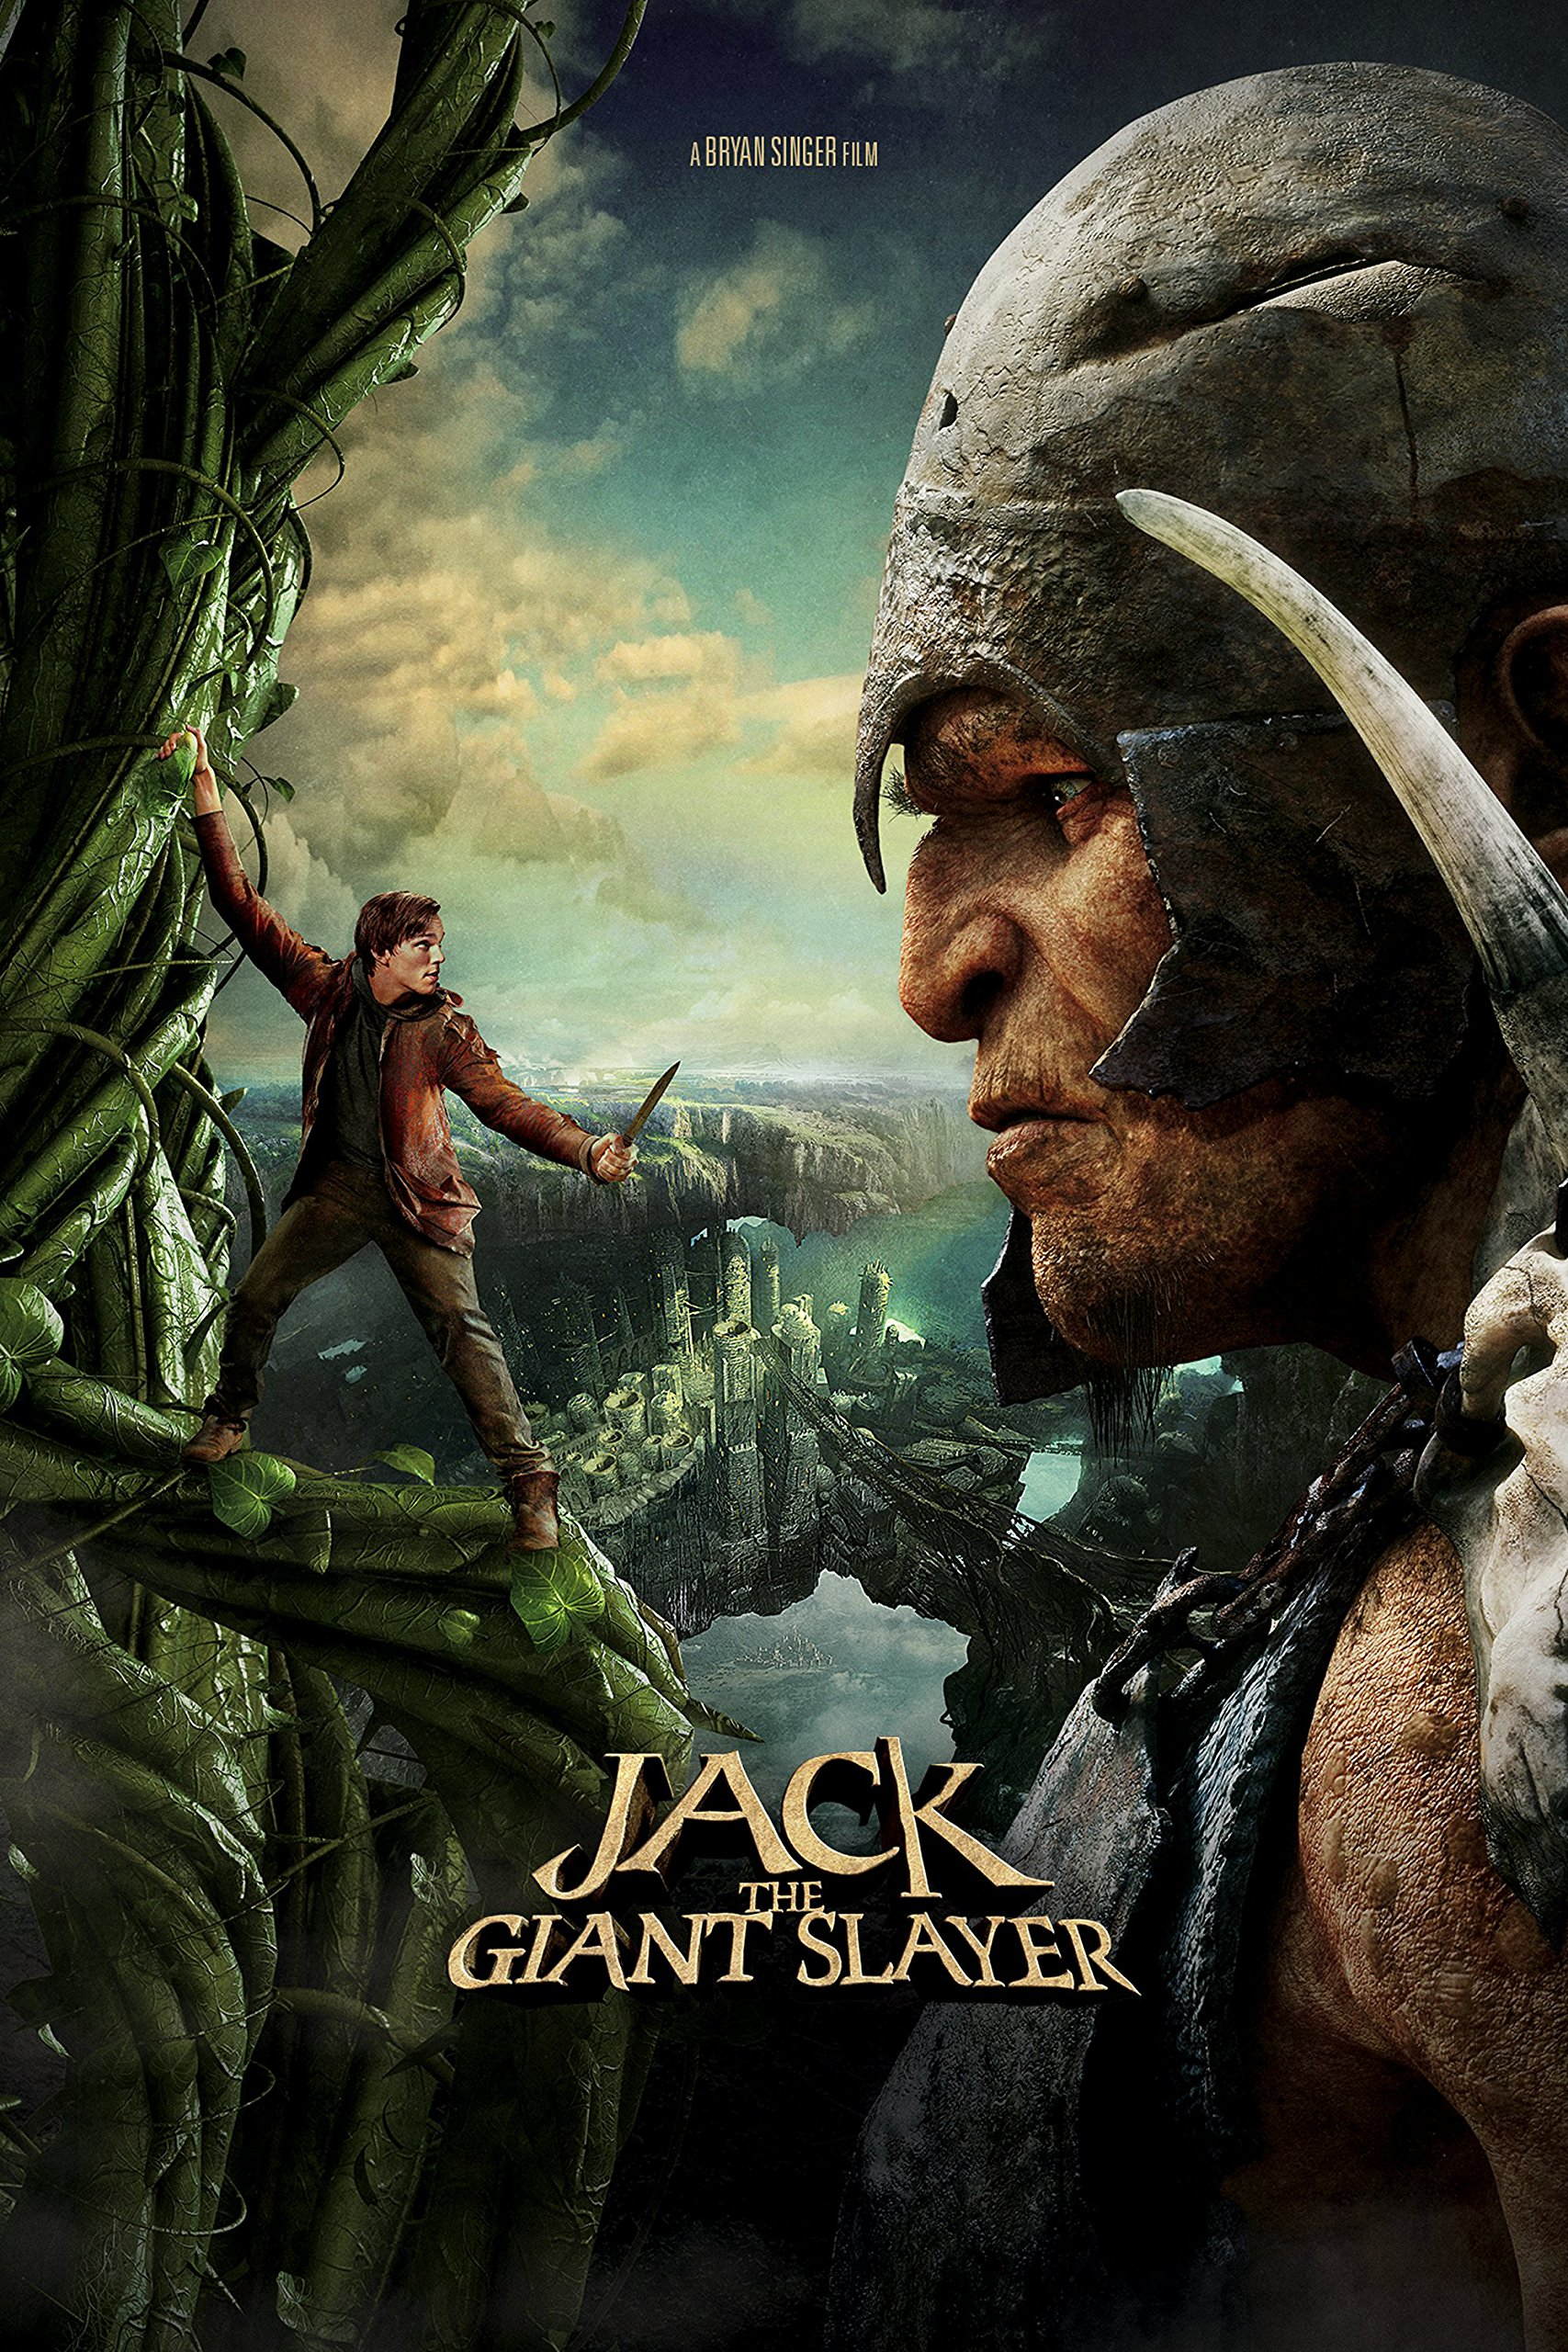 Jack the Giant Slayer by